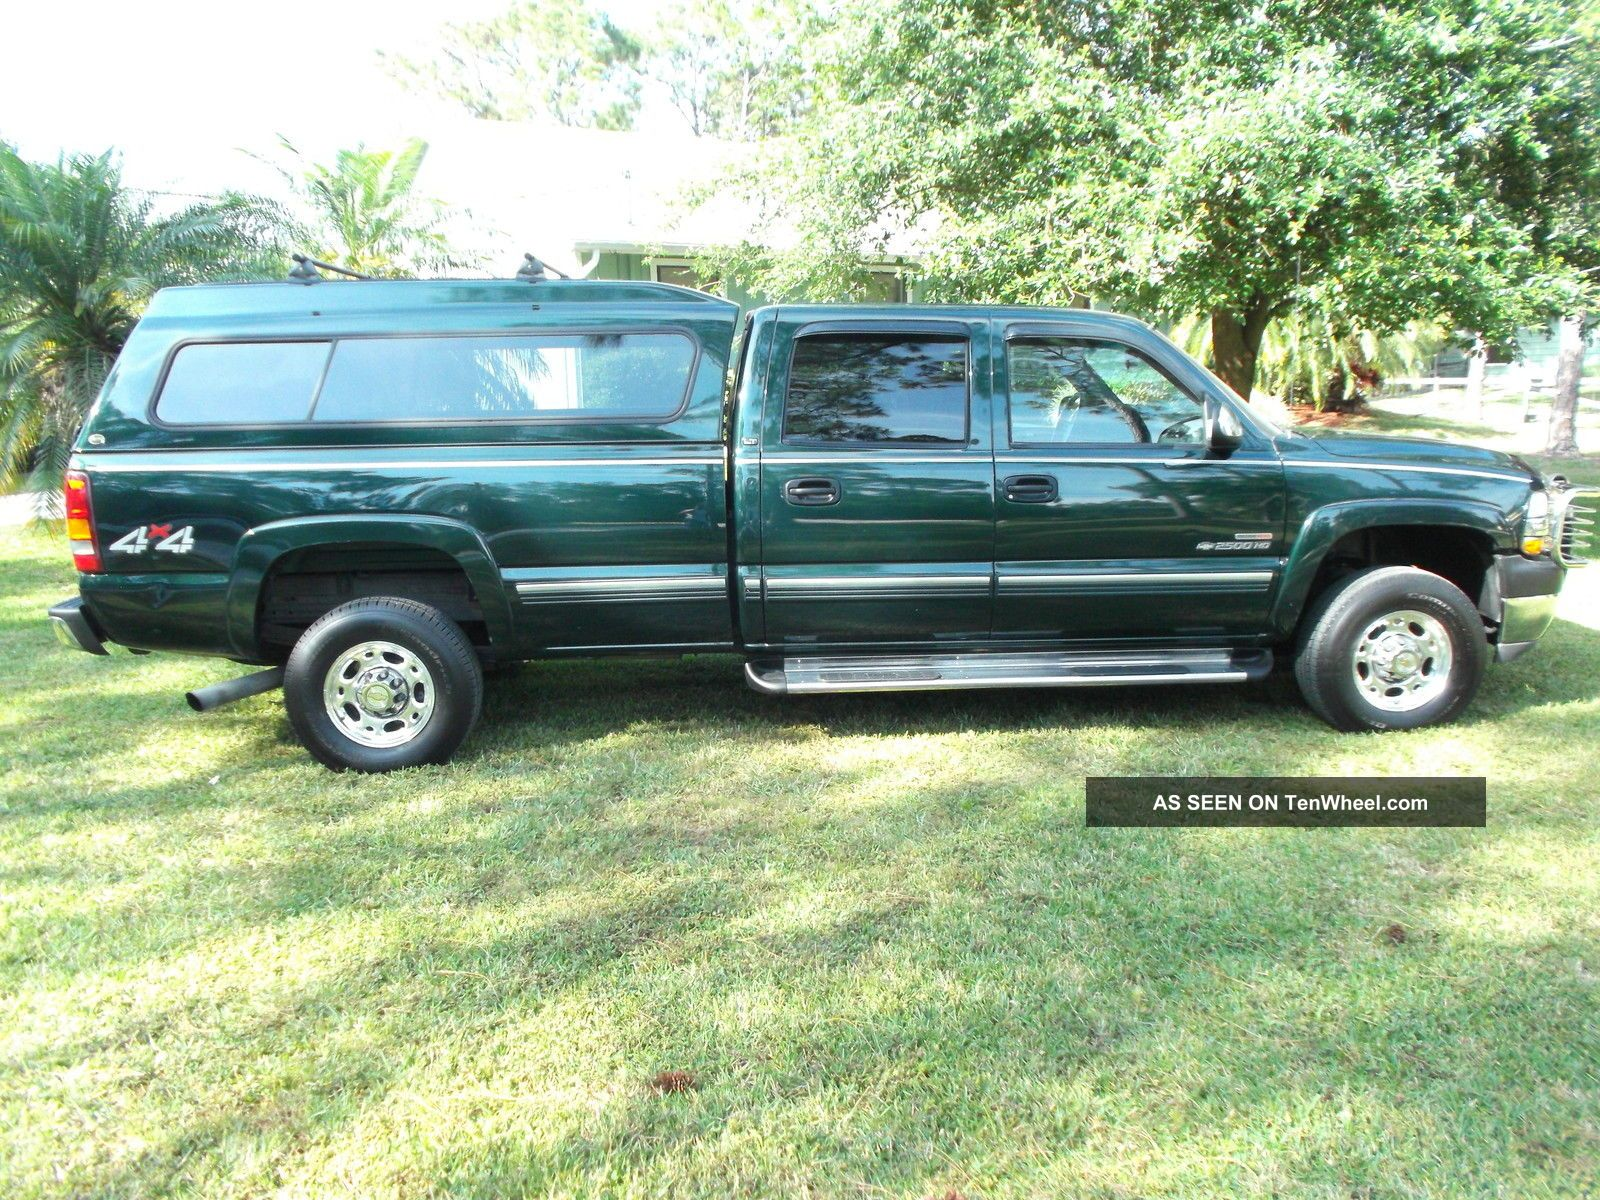 2002 chevrolet silverado 2500 hd duramax 4x4 ex cab long bed autos post. Black Bedroom Furniture Sets. Home Design Ideas